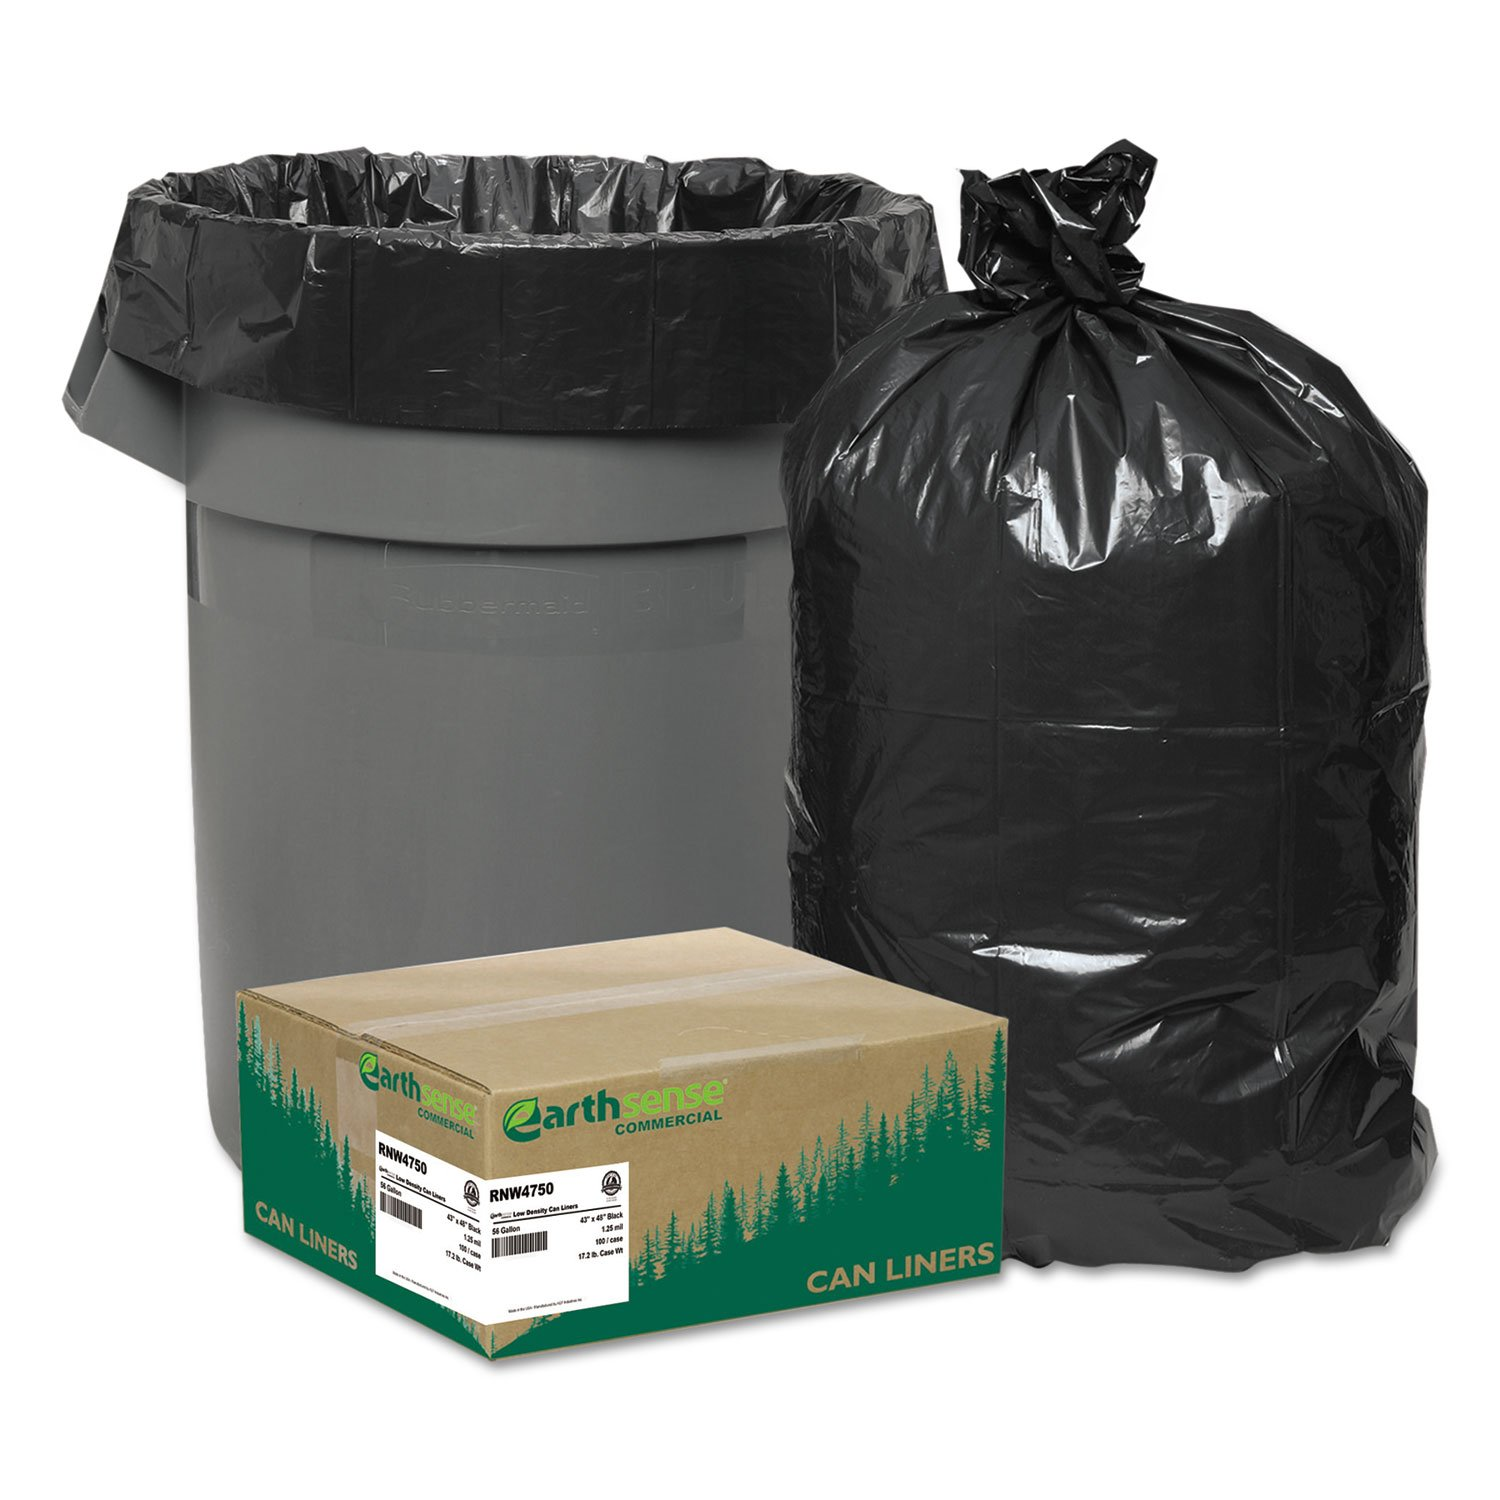 WBIRNW4750 - Webster Reclaim Heavy-Duty Recyled Can Liners